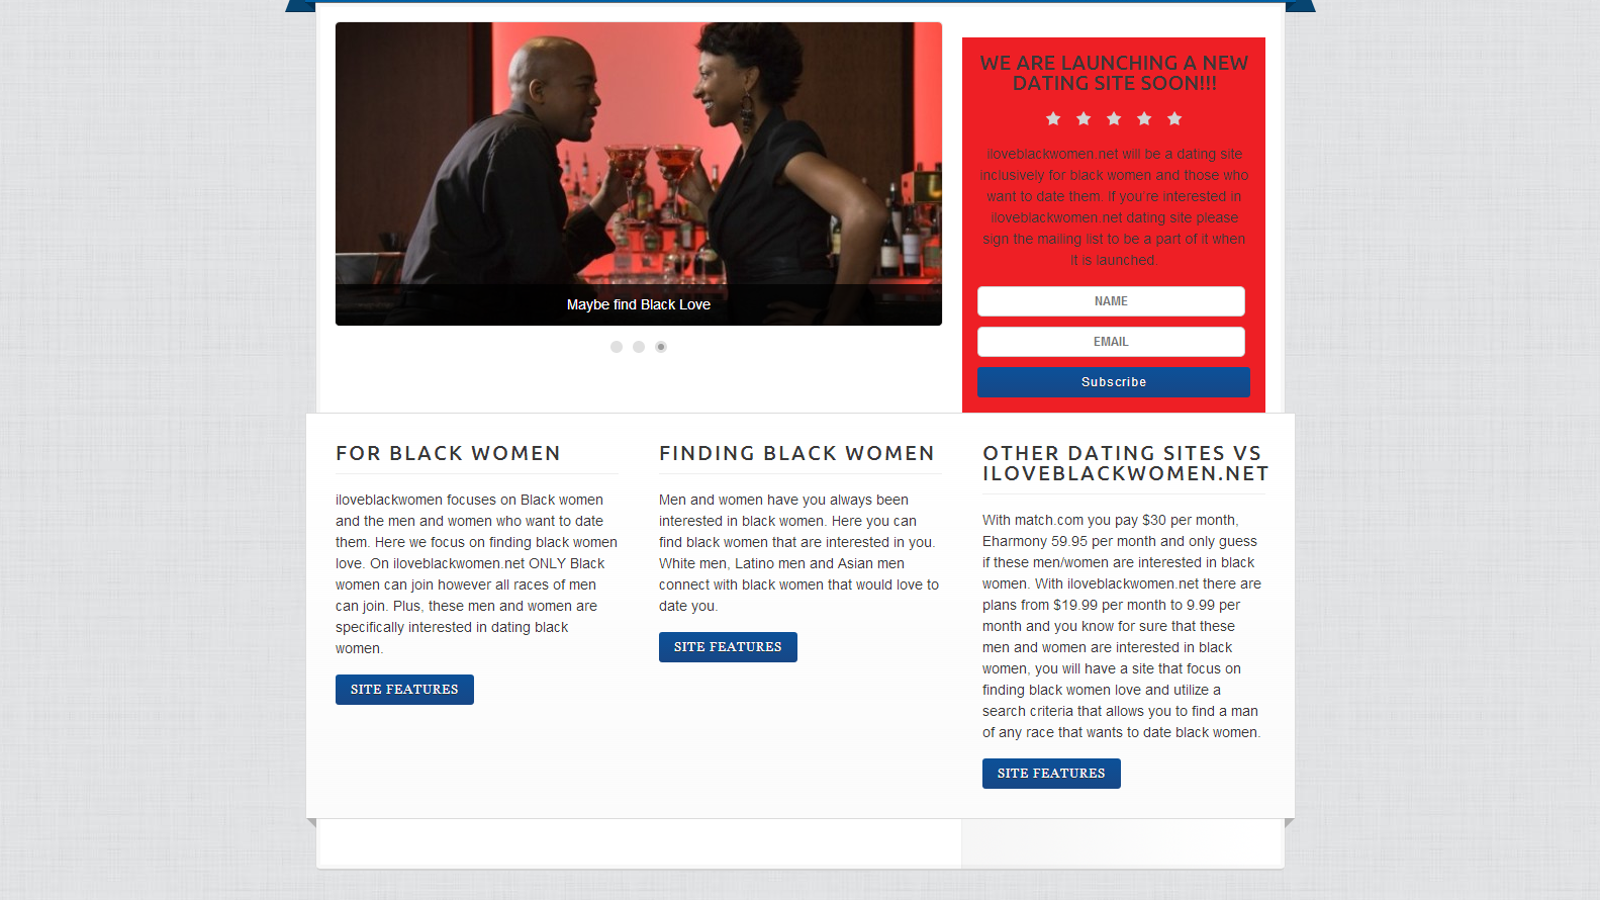 south lake black women dating site Australia's most trusted dating site - rsvp advanced search capabilities to help find someone for love & relationships free to browse & join.